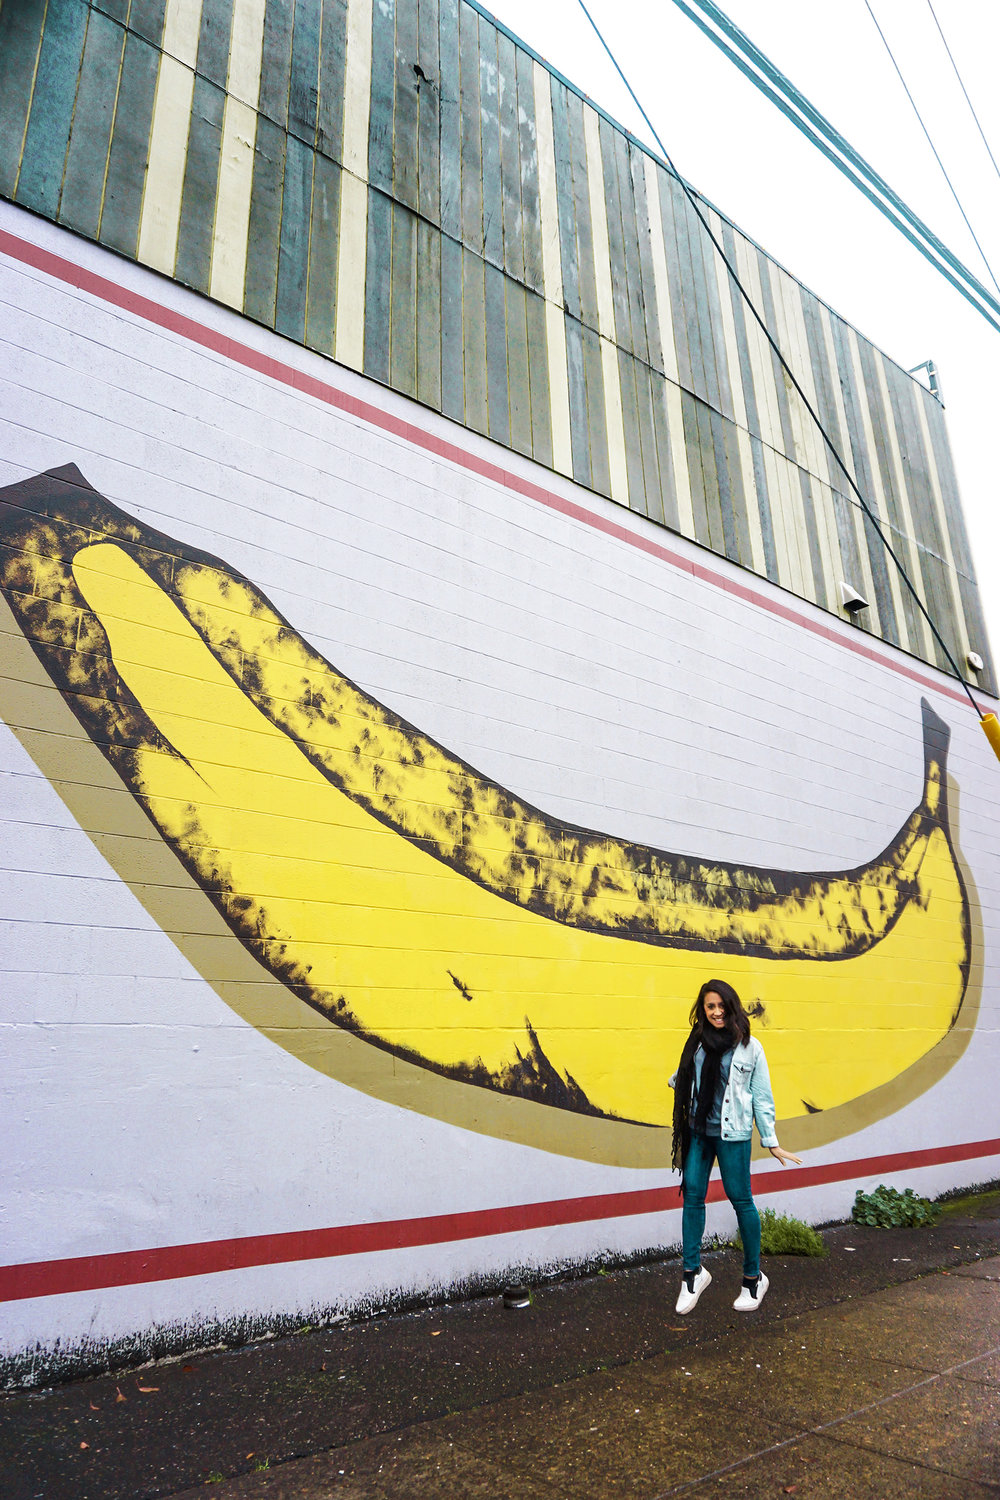 Gorilla Wallflare's potassium filled wall is sure to put you in a good mood